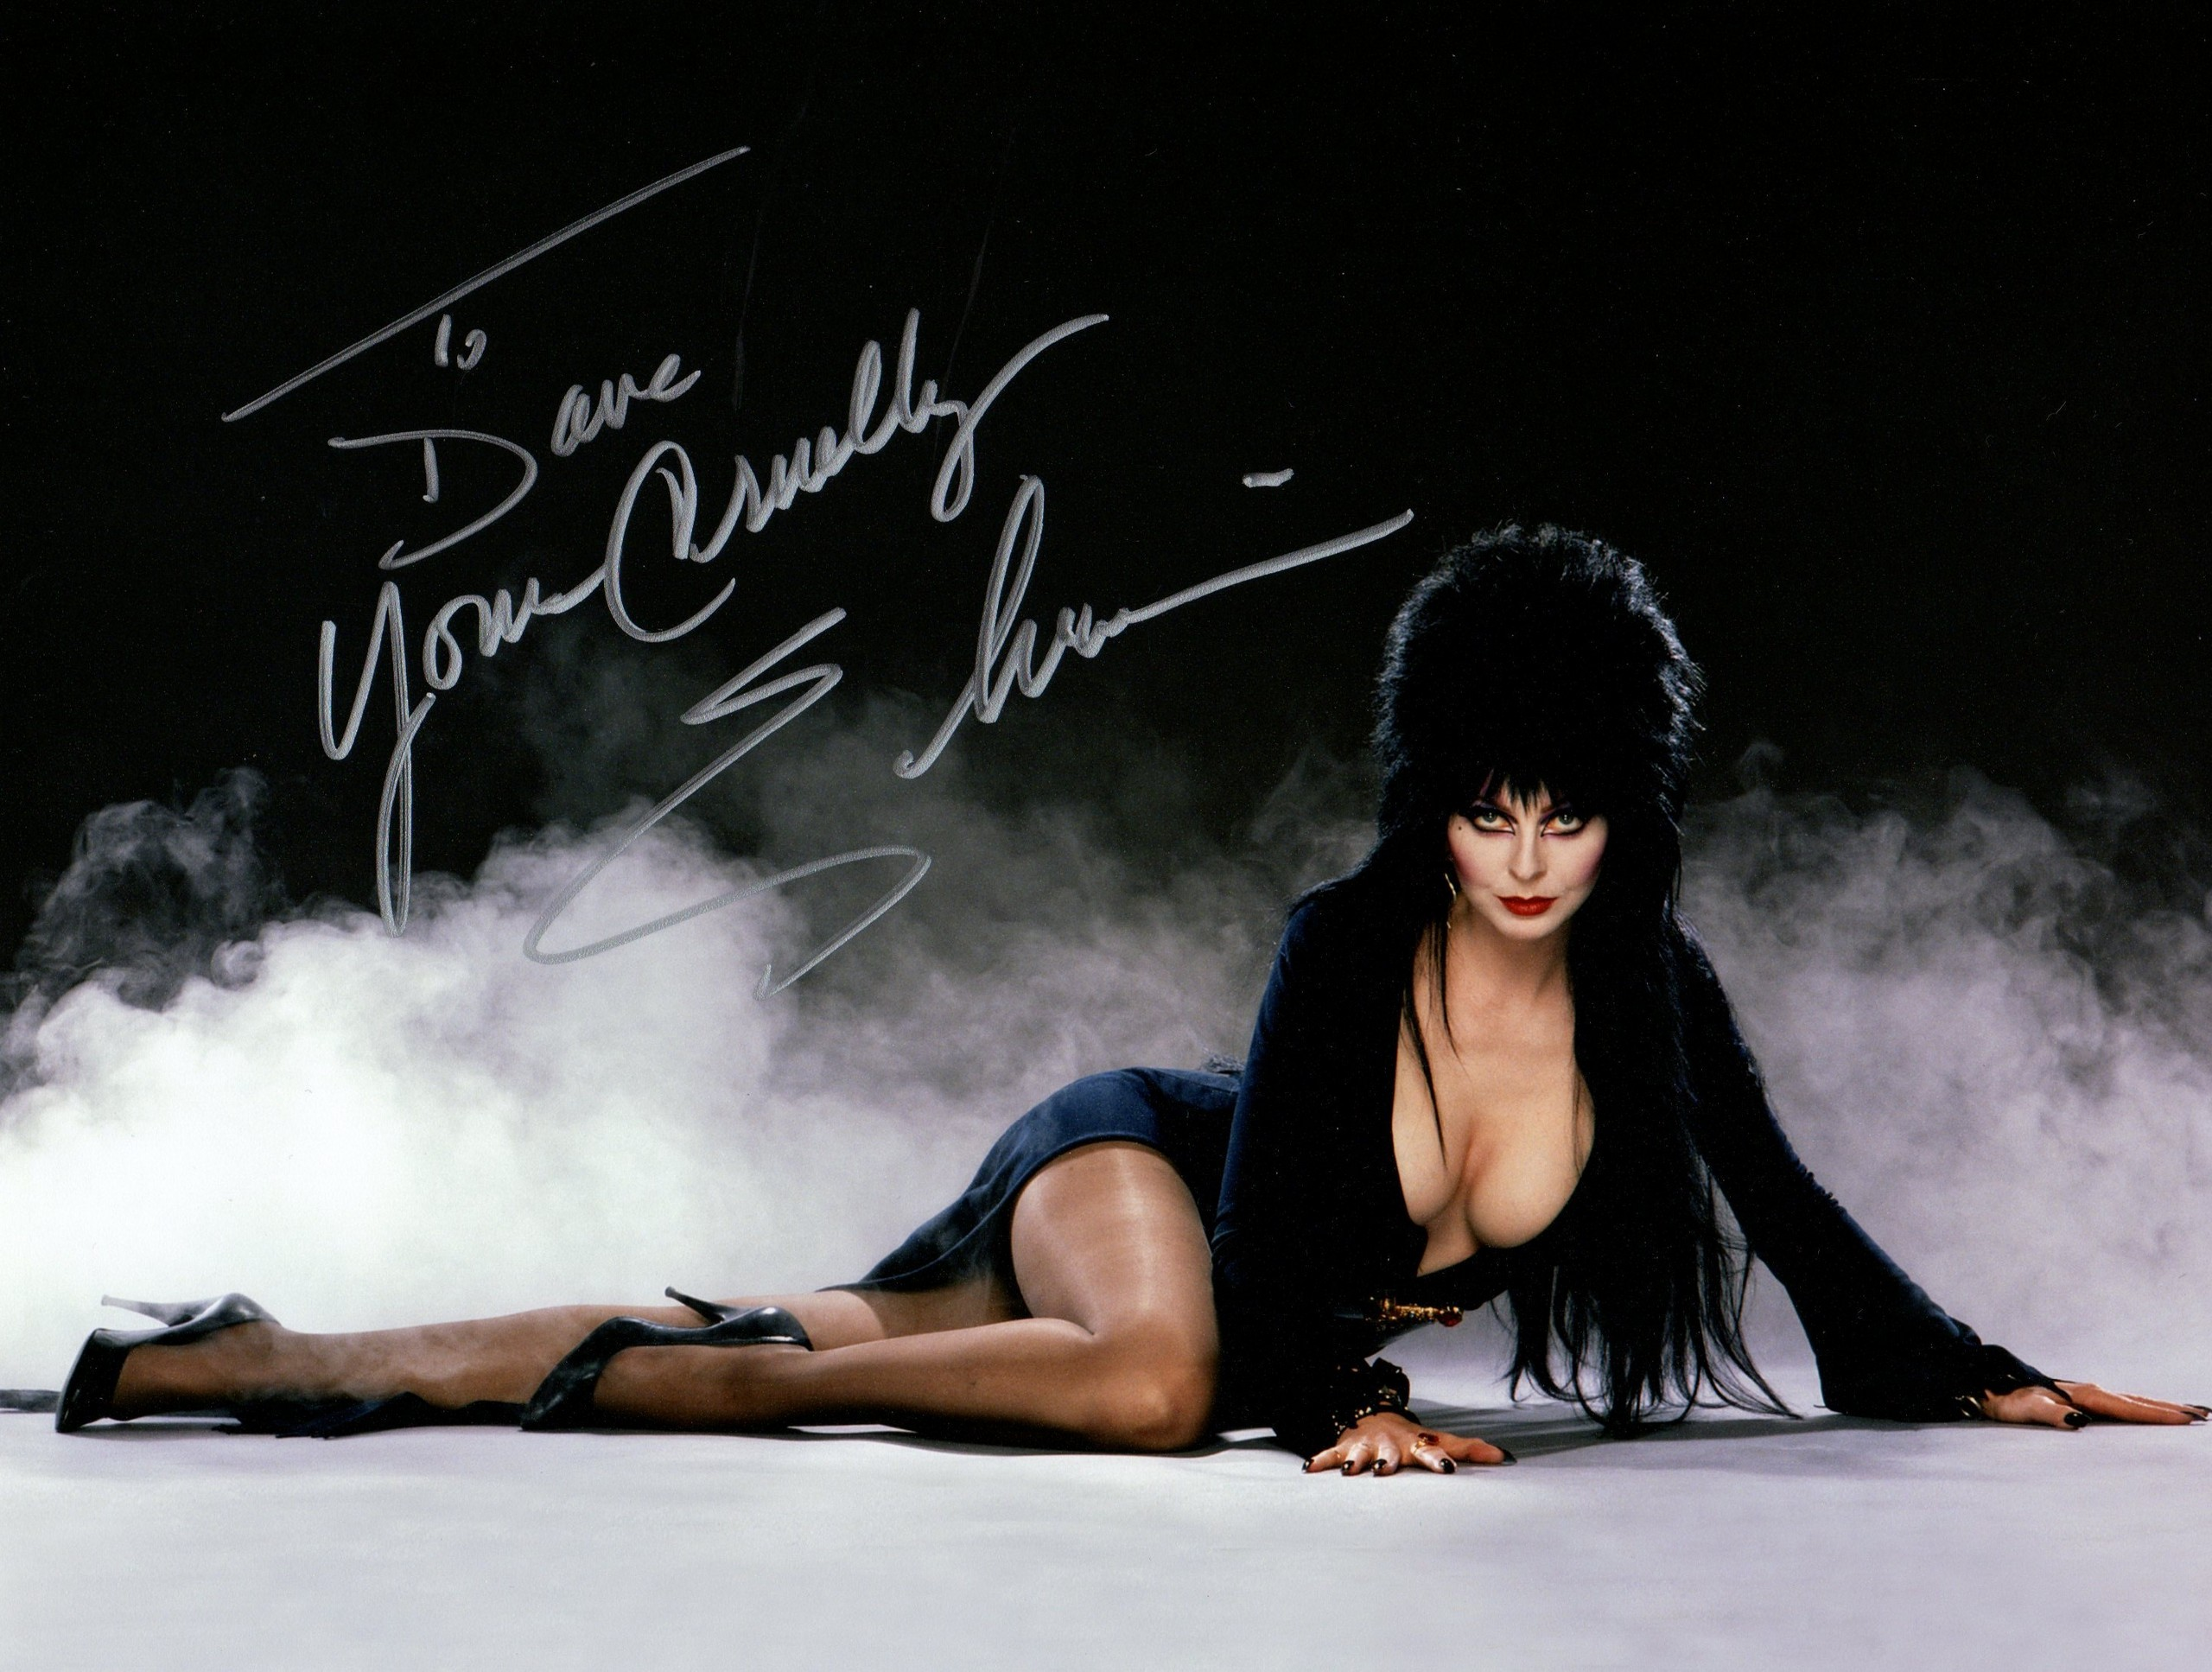 Elvira boob popping out